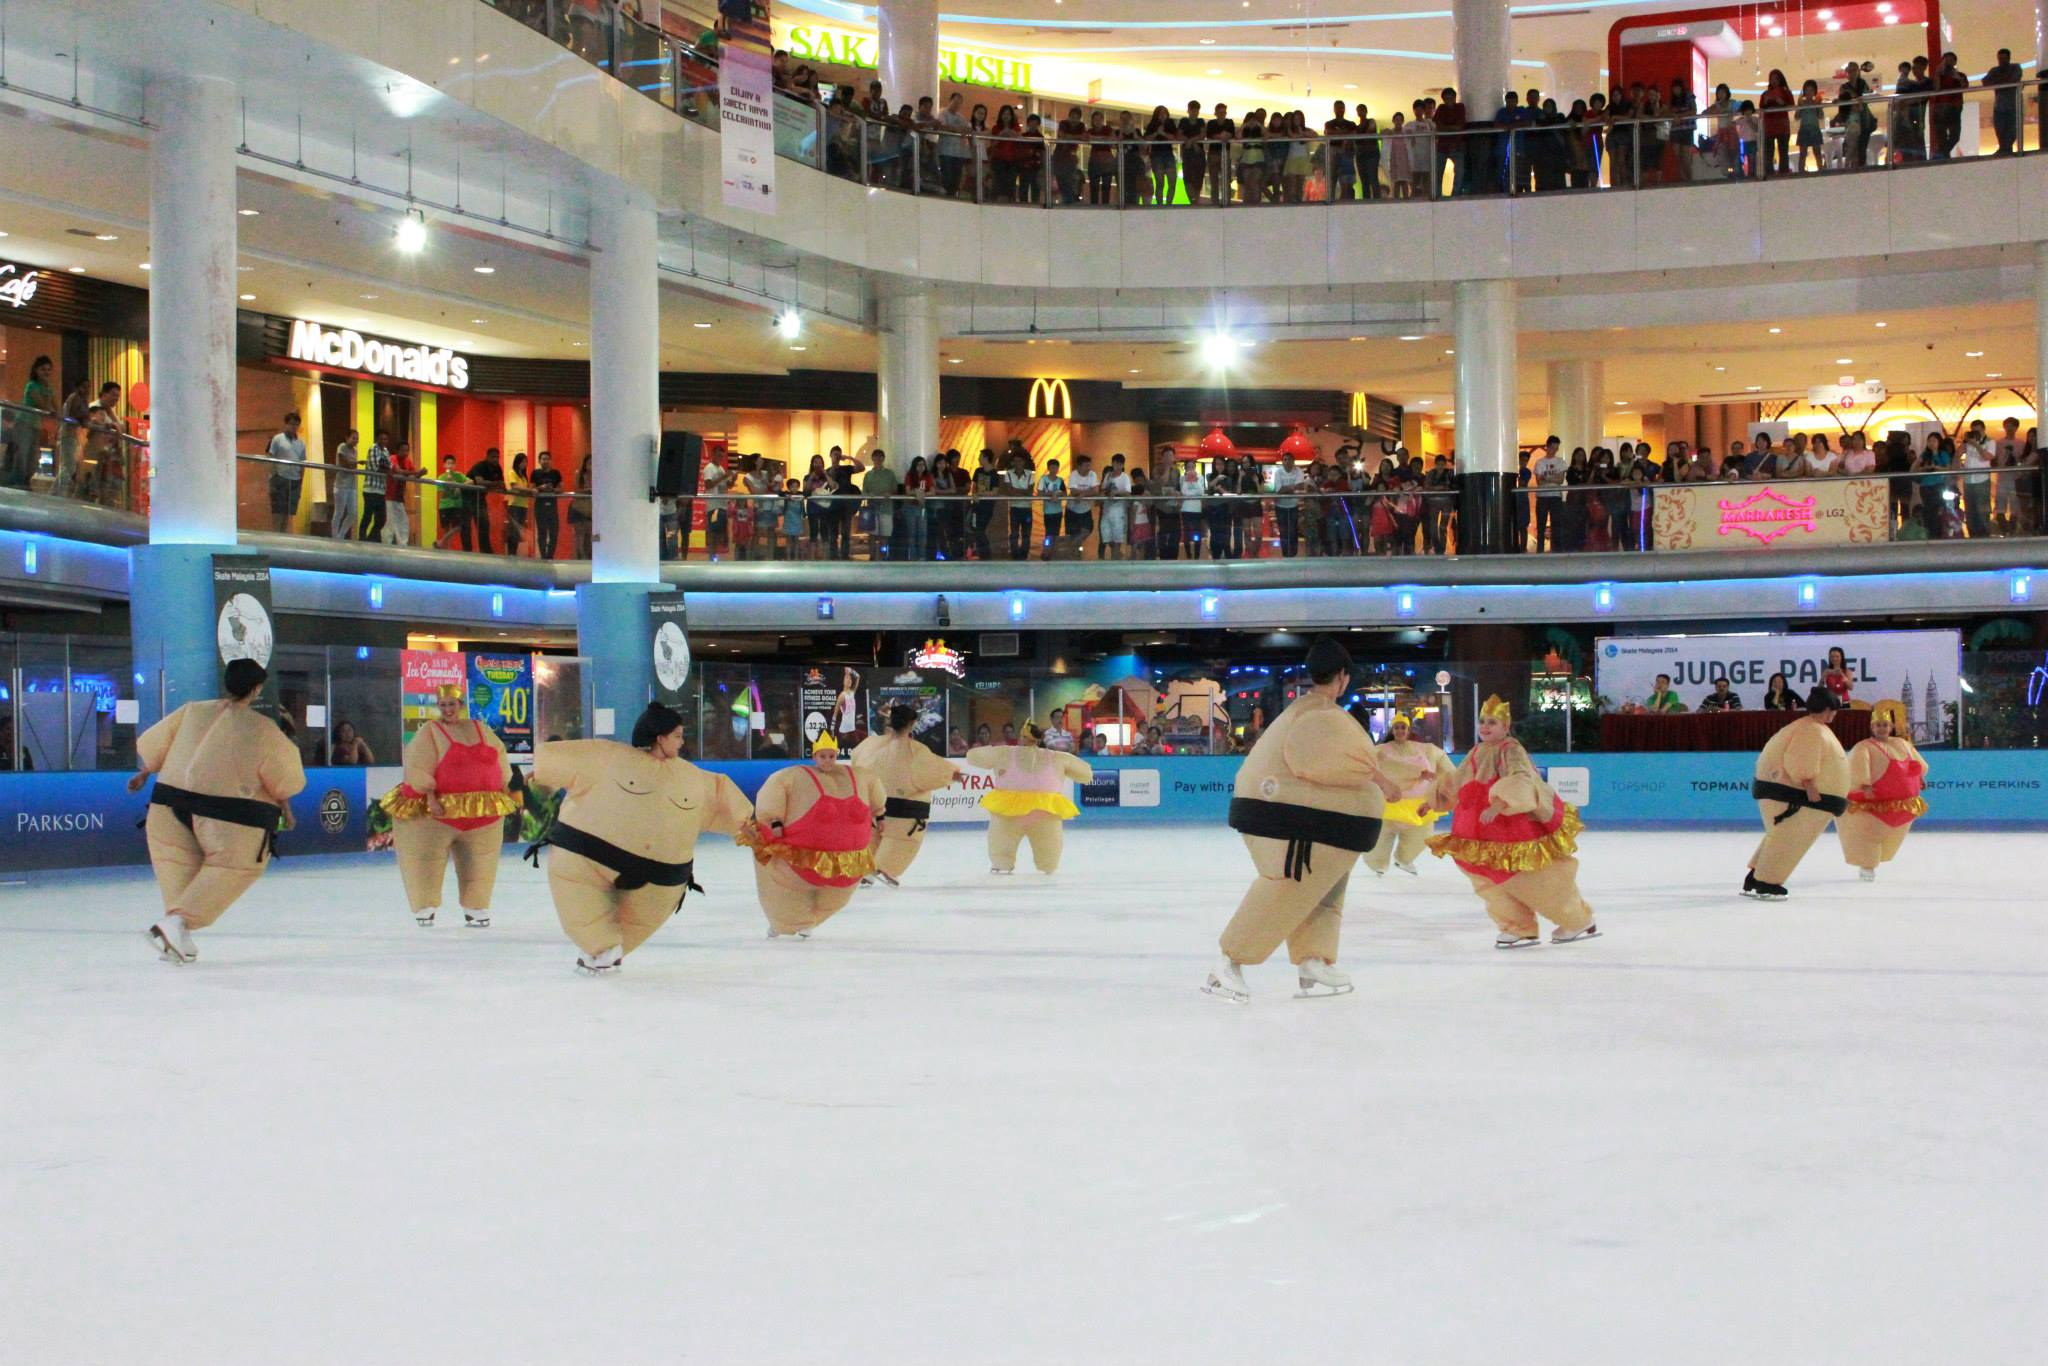 Image from Sunway Pyramid Ice/Facebook